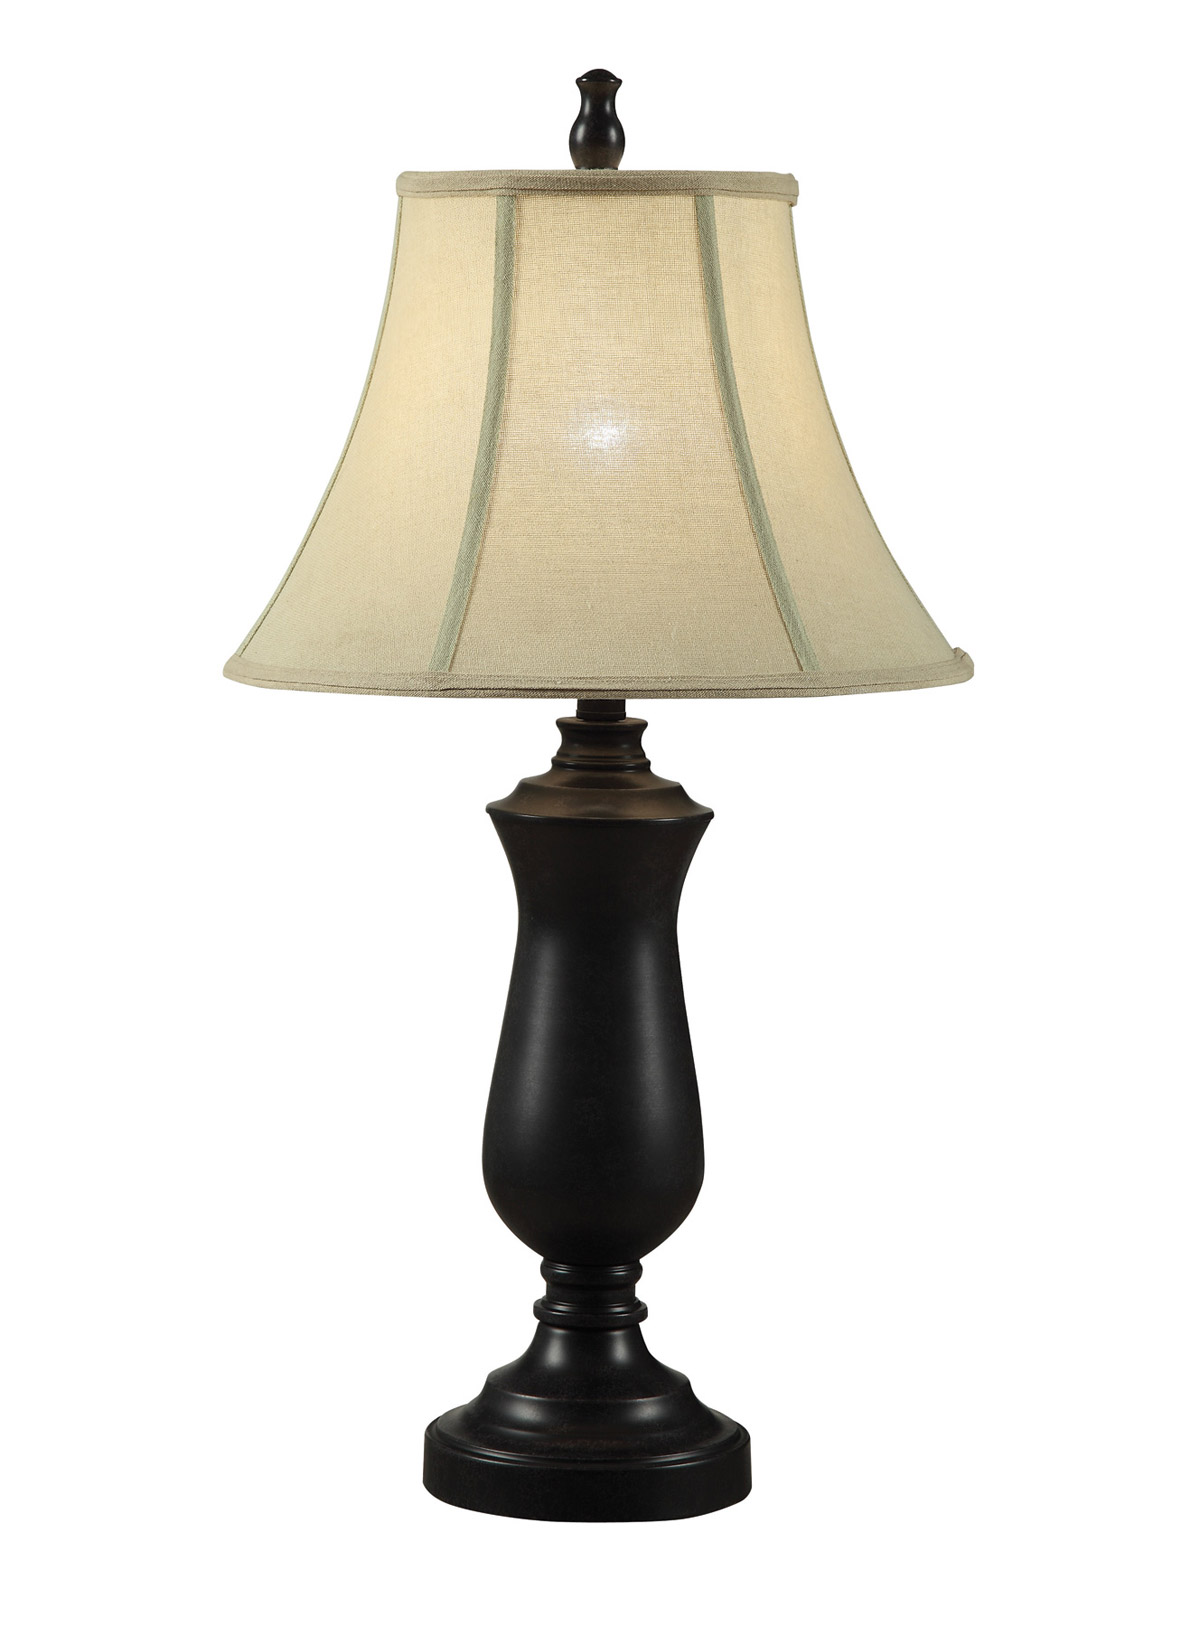 Coaster 901535 Table Lamp - Dark Bronze